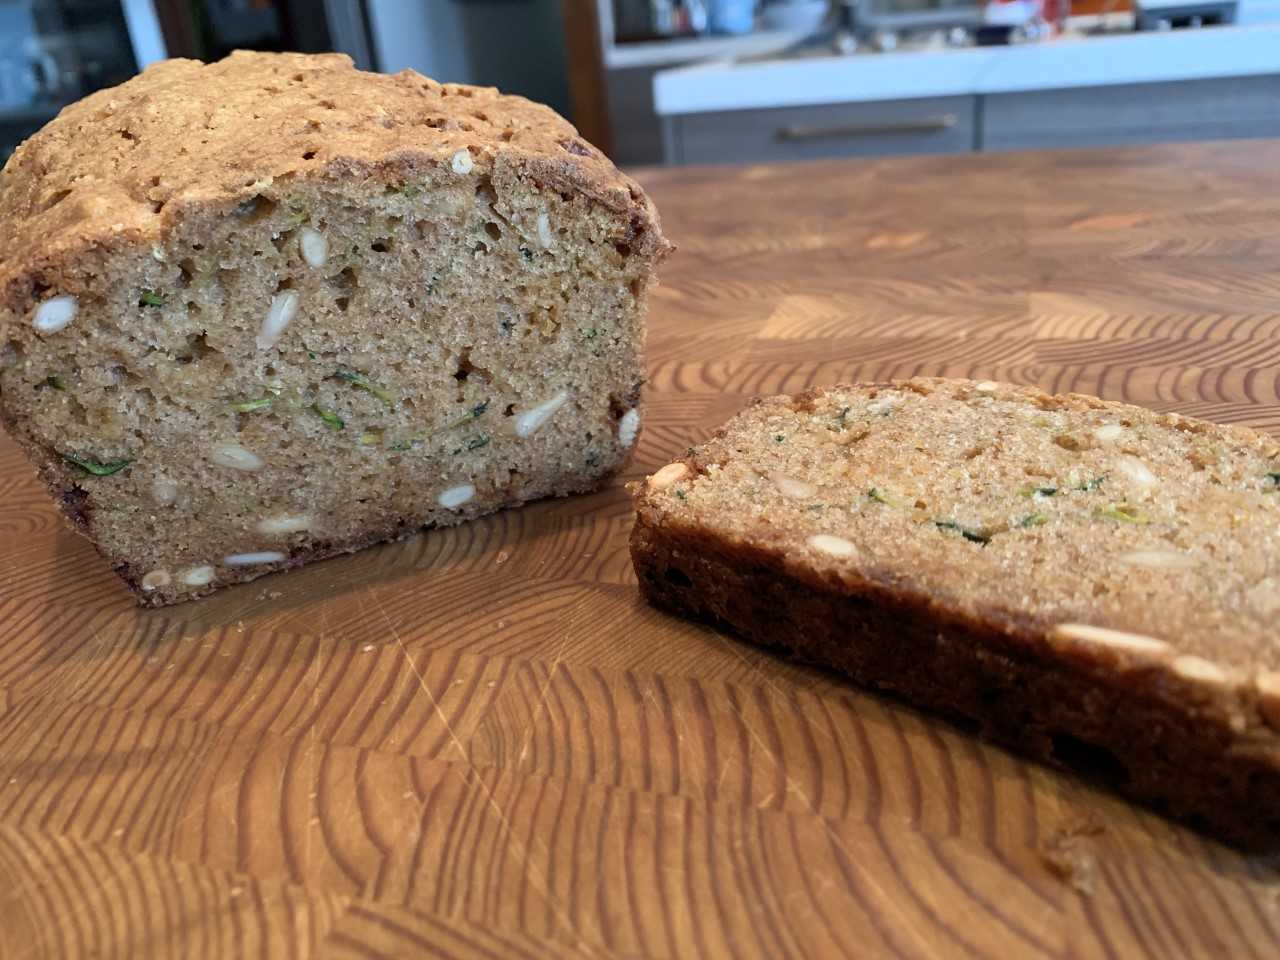 How to Make Zucchini Bread So It's Perfect Every Time